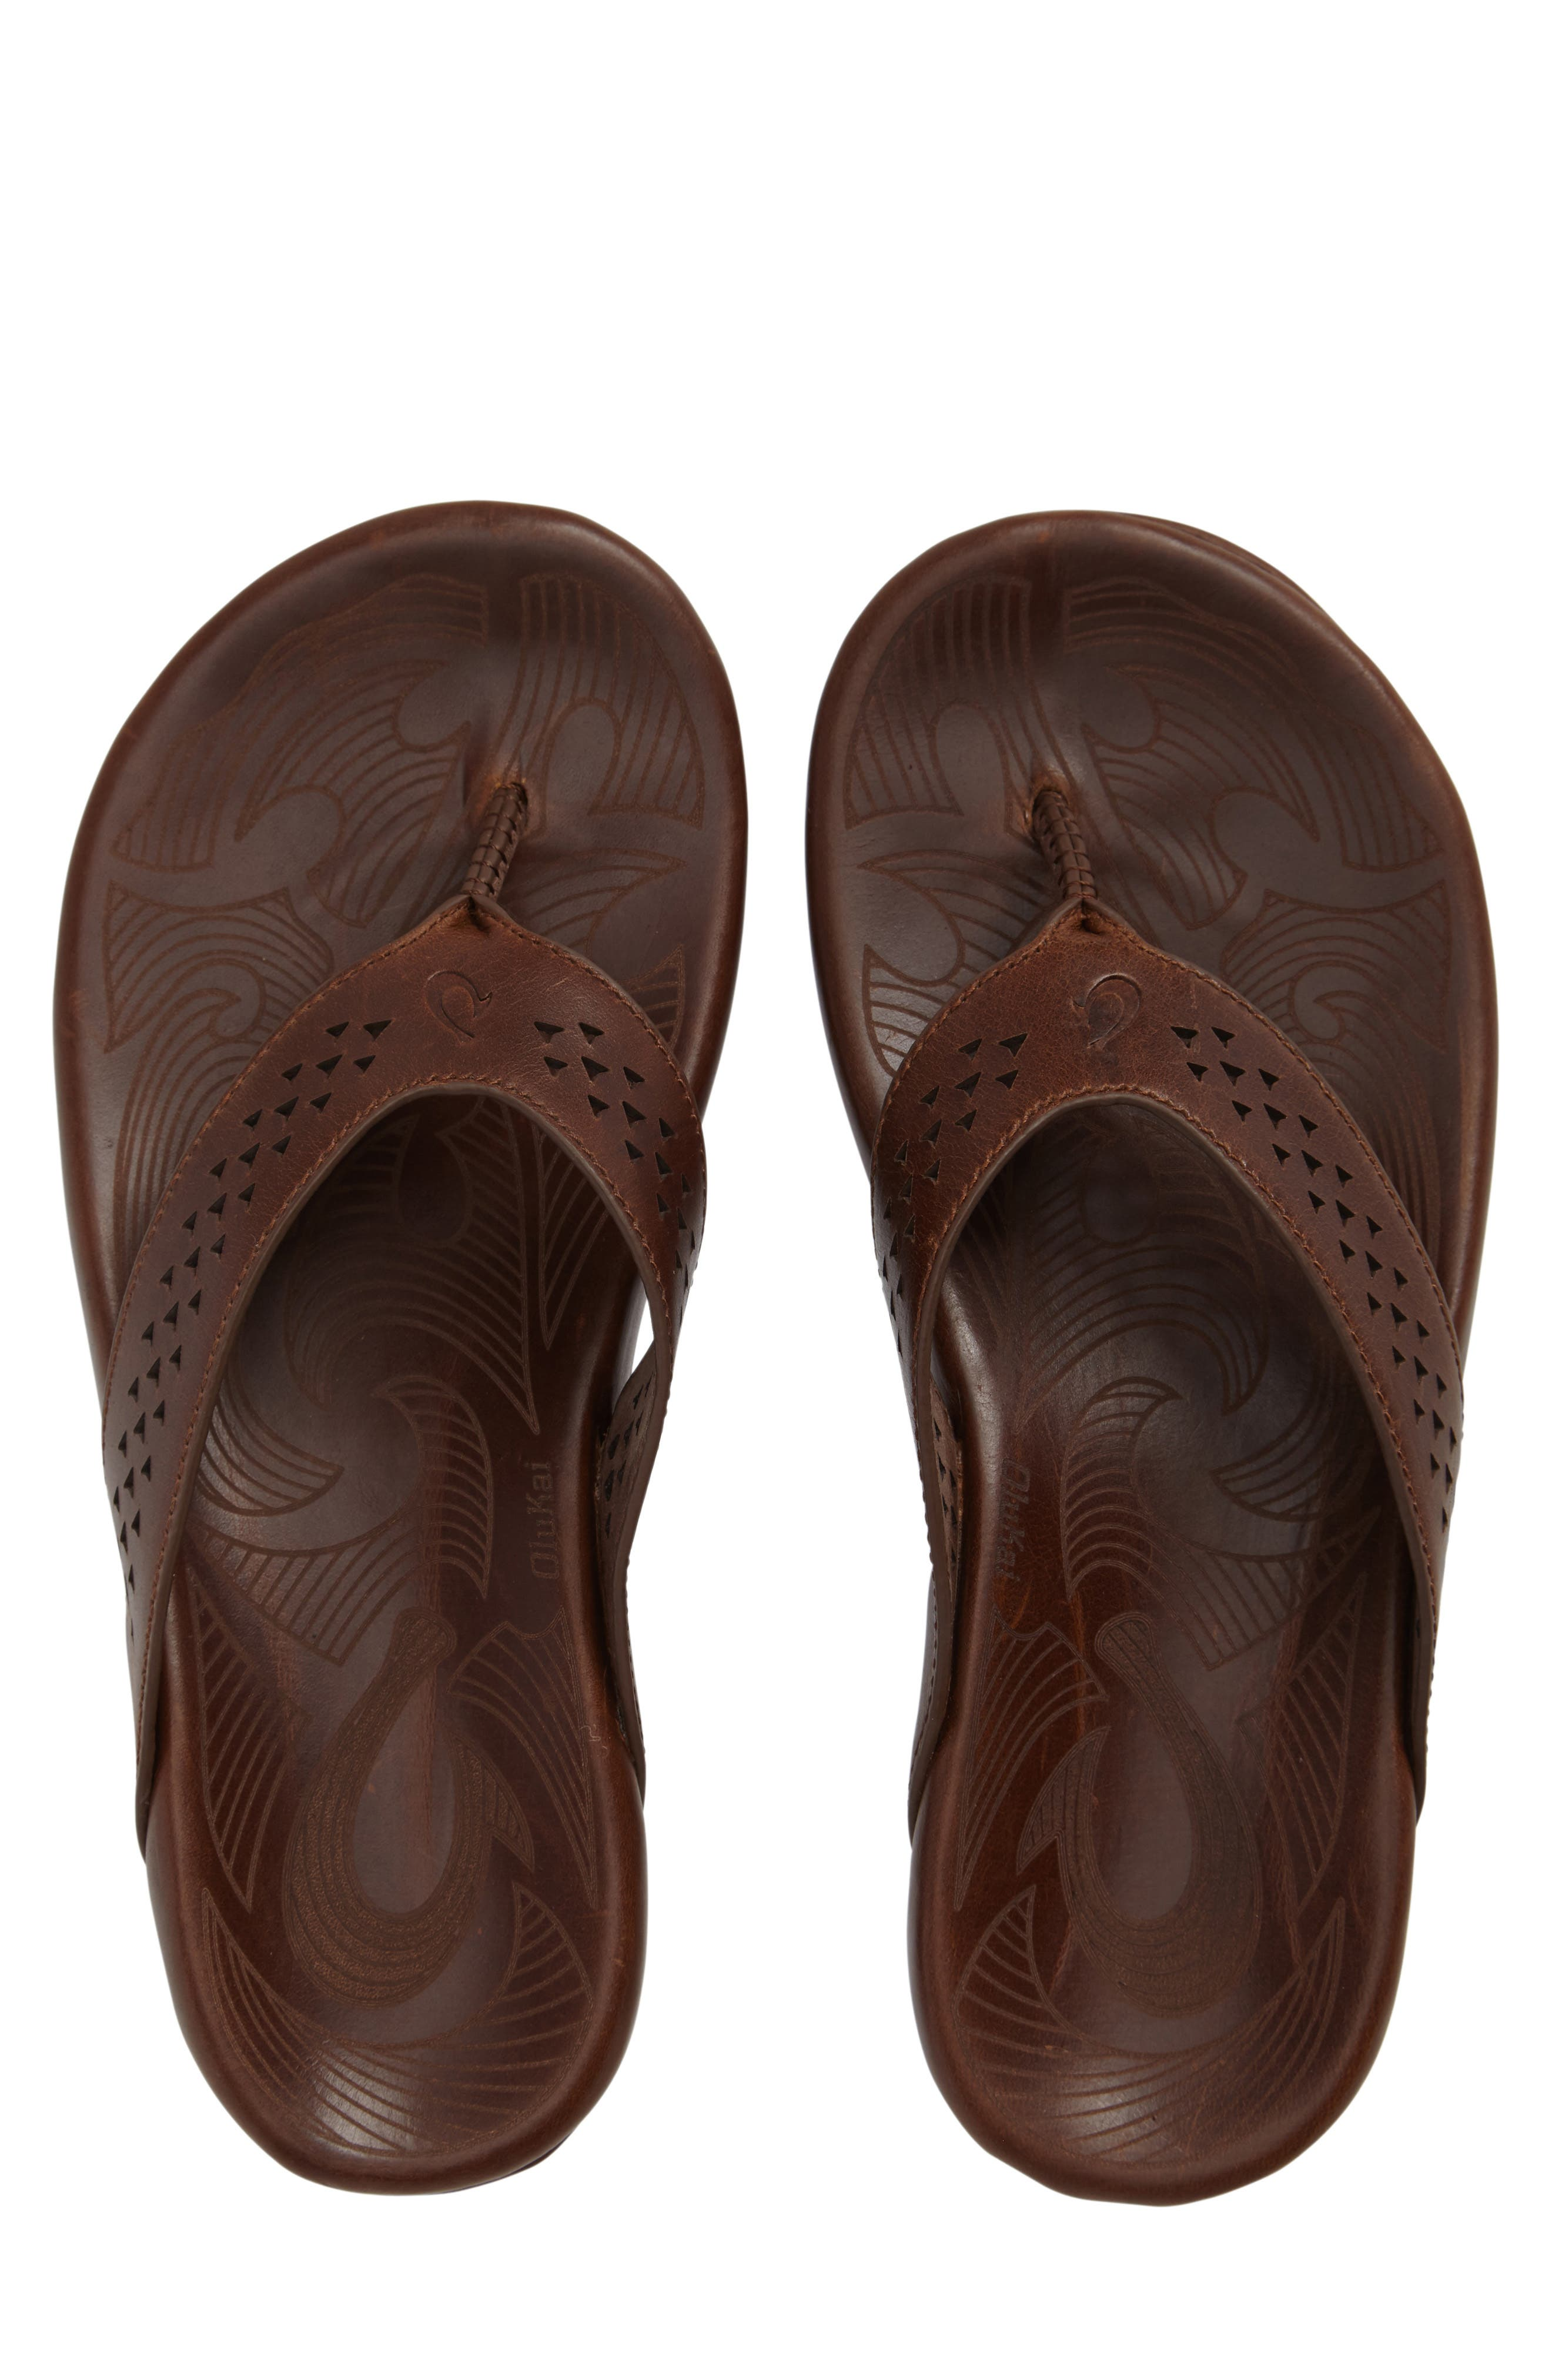 Kohana Flip Flop,                             Main thumbnail 1, color,                             Toffee/ Toffee Leather